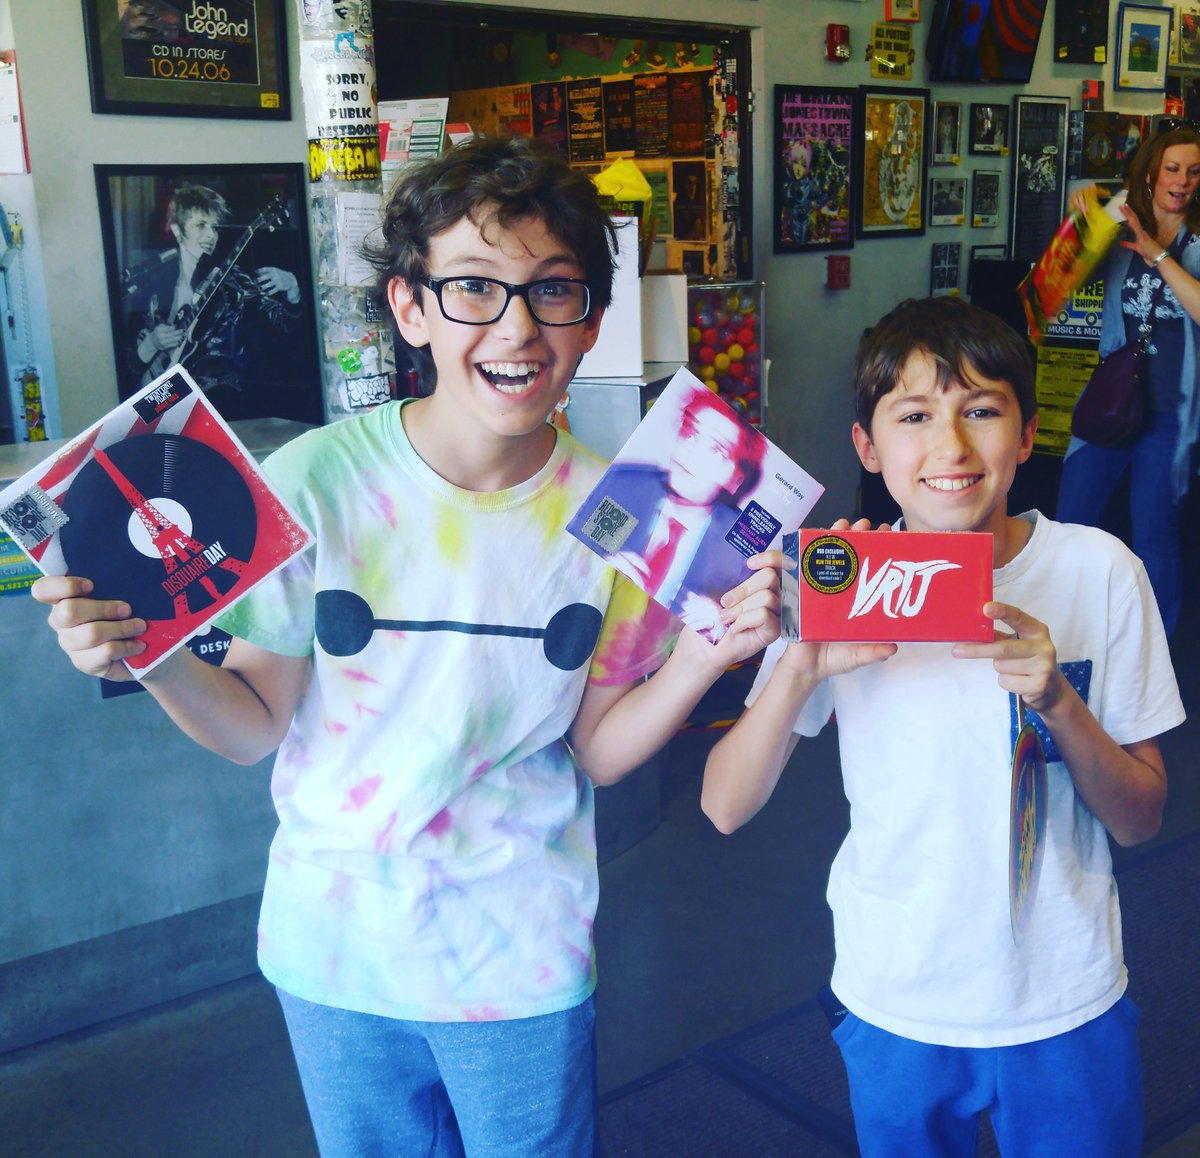 These young fans came out for #RSD16 and were especially stoked for the @twentyonepilots, @gerardway & @runjewels! https://t.co/tp0k51TZkm